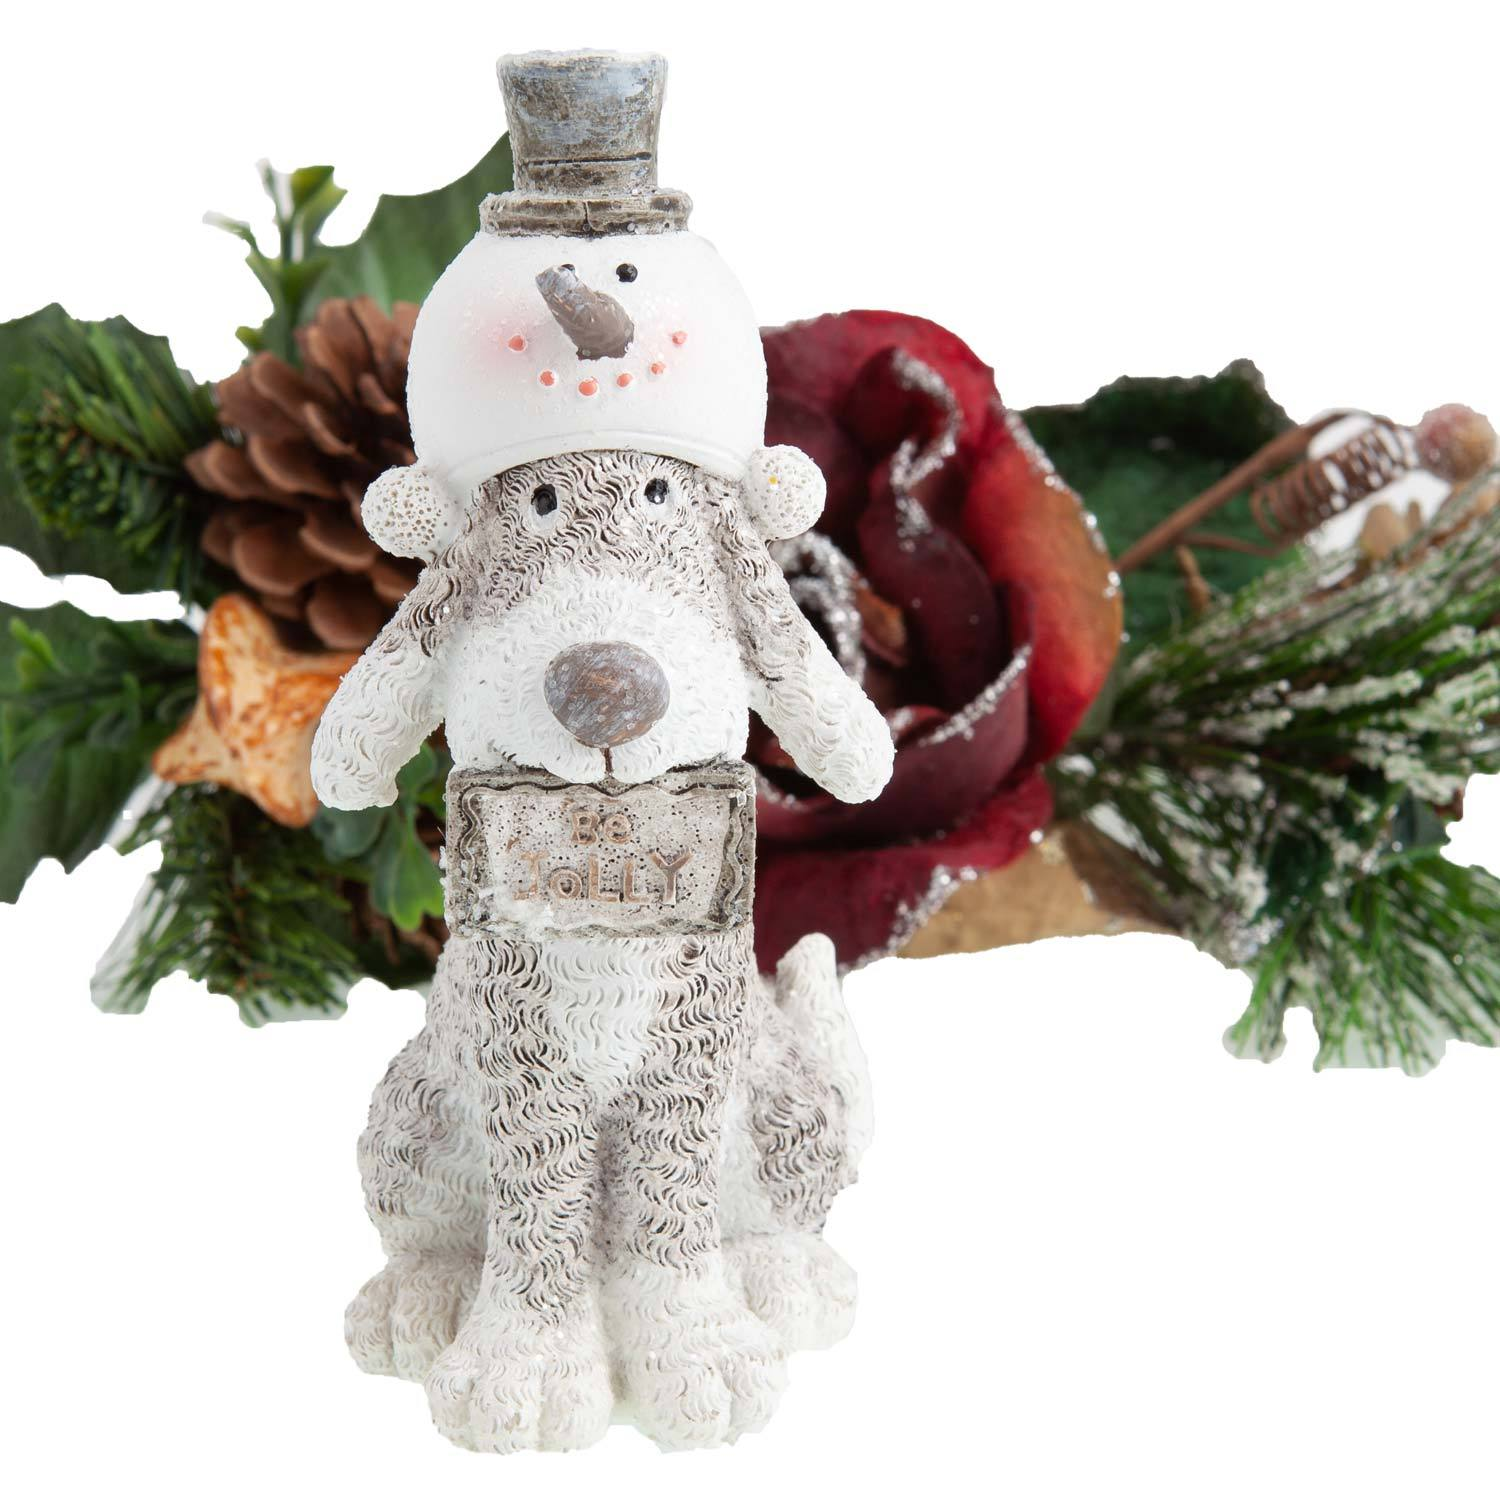 Dog Krazy Gifts - Dog in Snowman Hat Christmas Decoration - available from the Christmas Grotto at DogKrazyGifts.co.uk